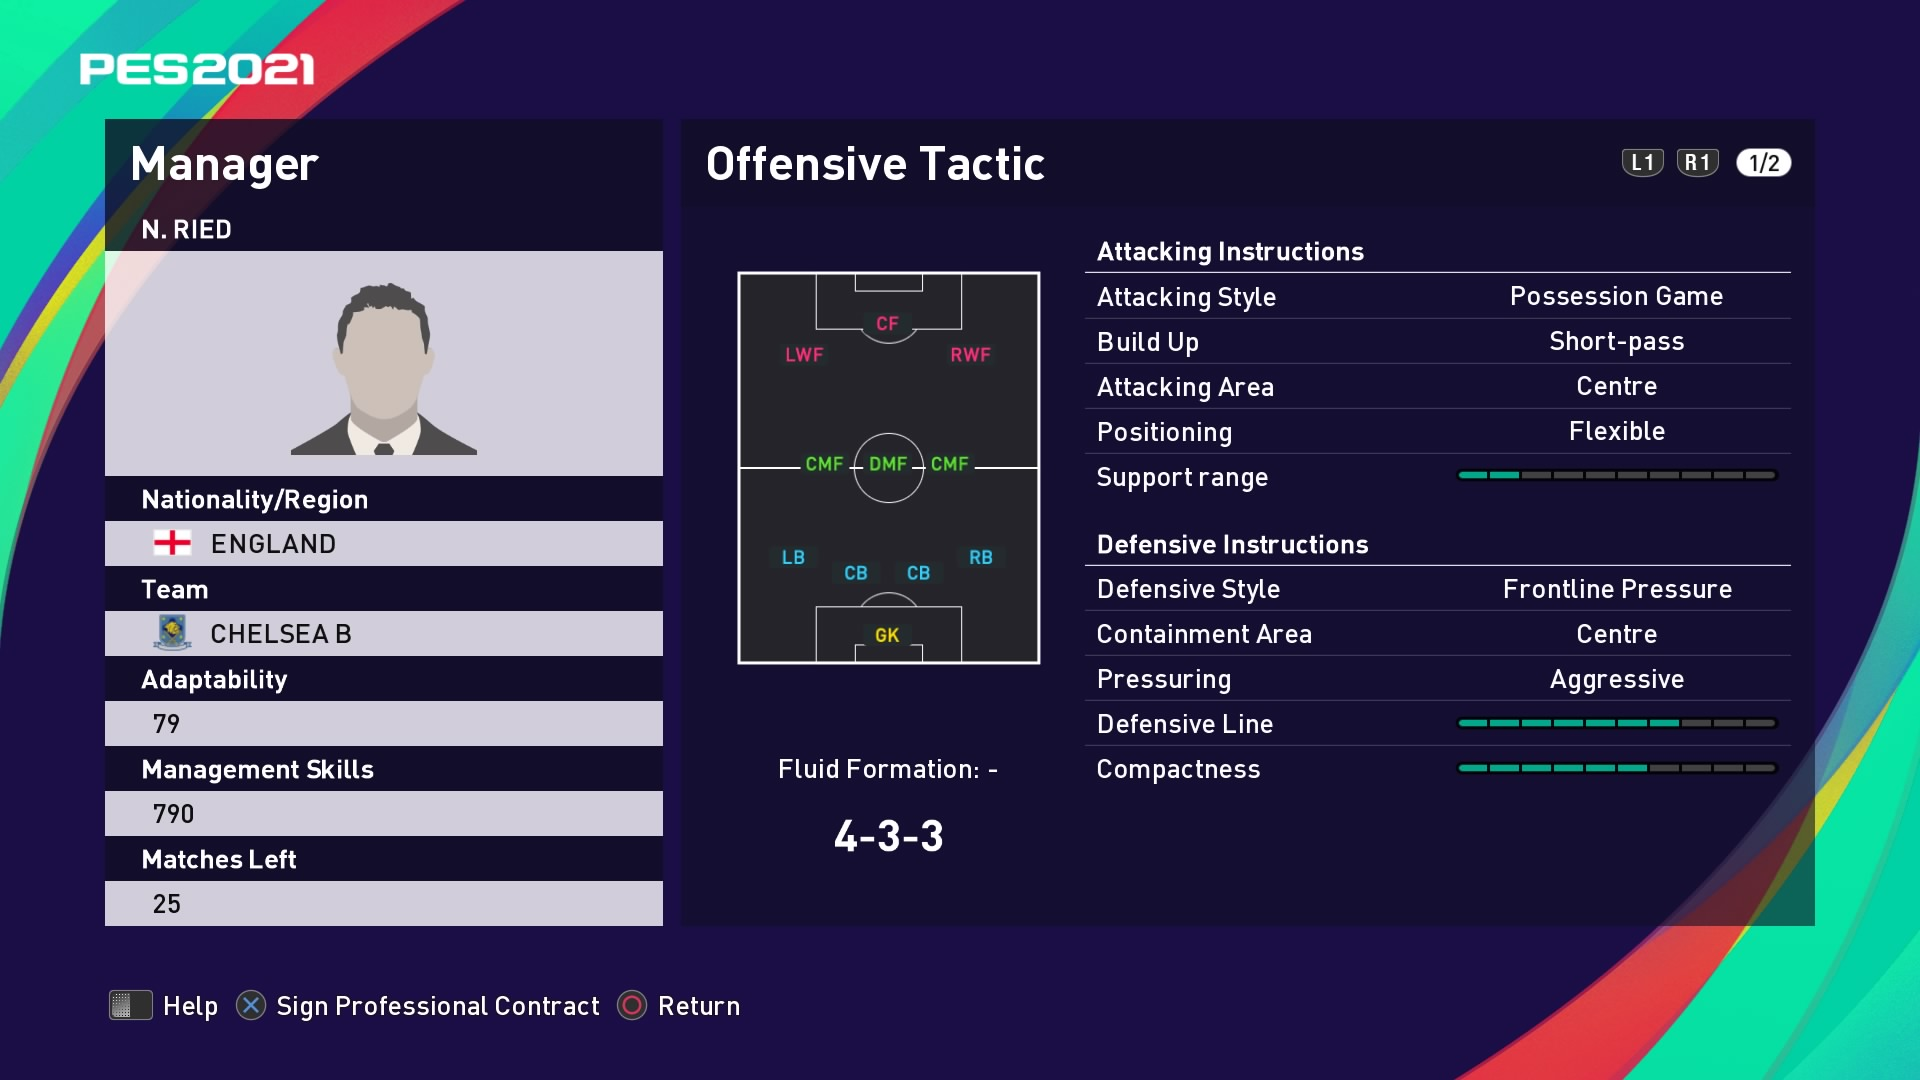 N. Ried (Frank Lampard) Offensive Tactic in PES 2021 myClub